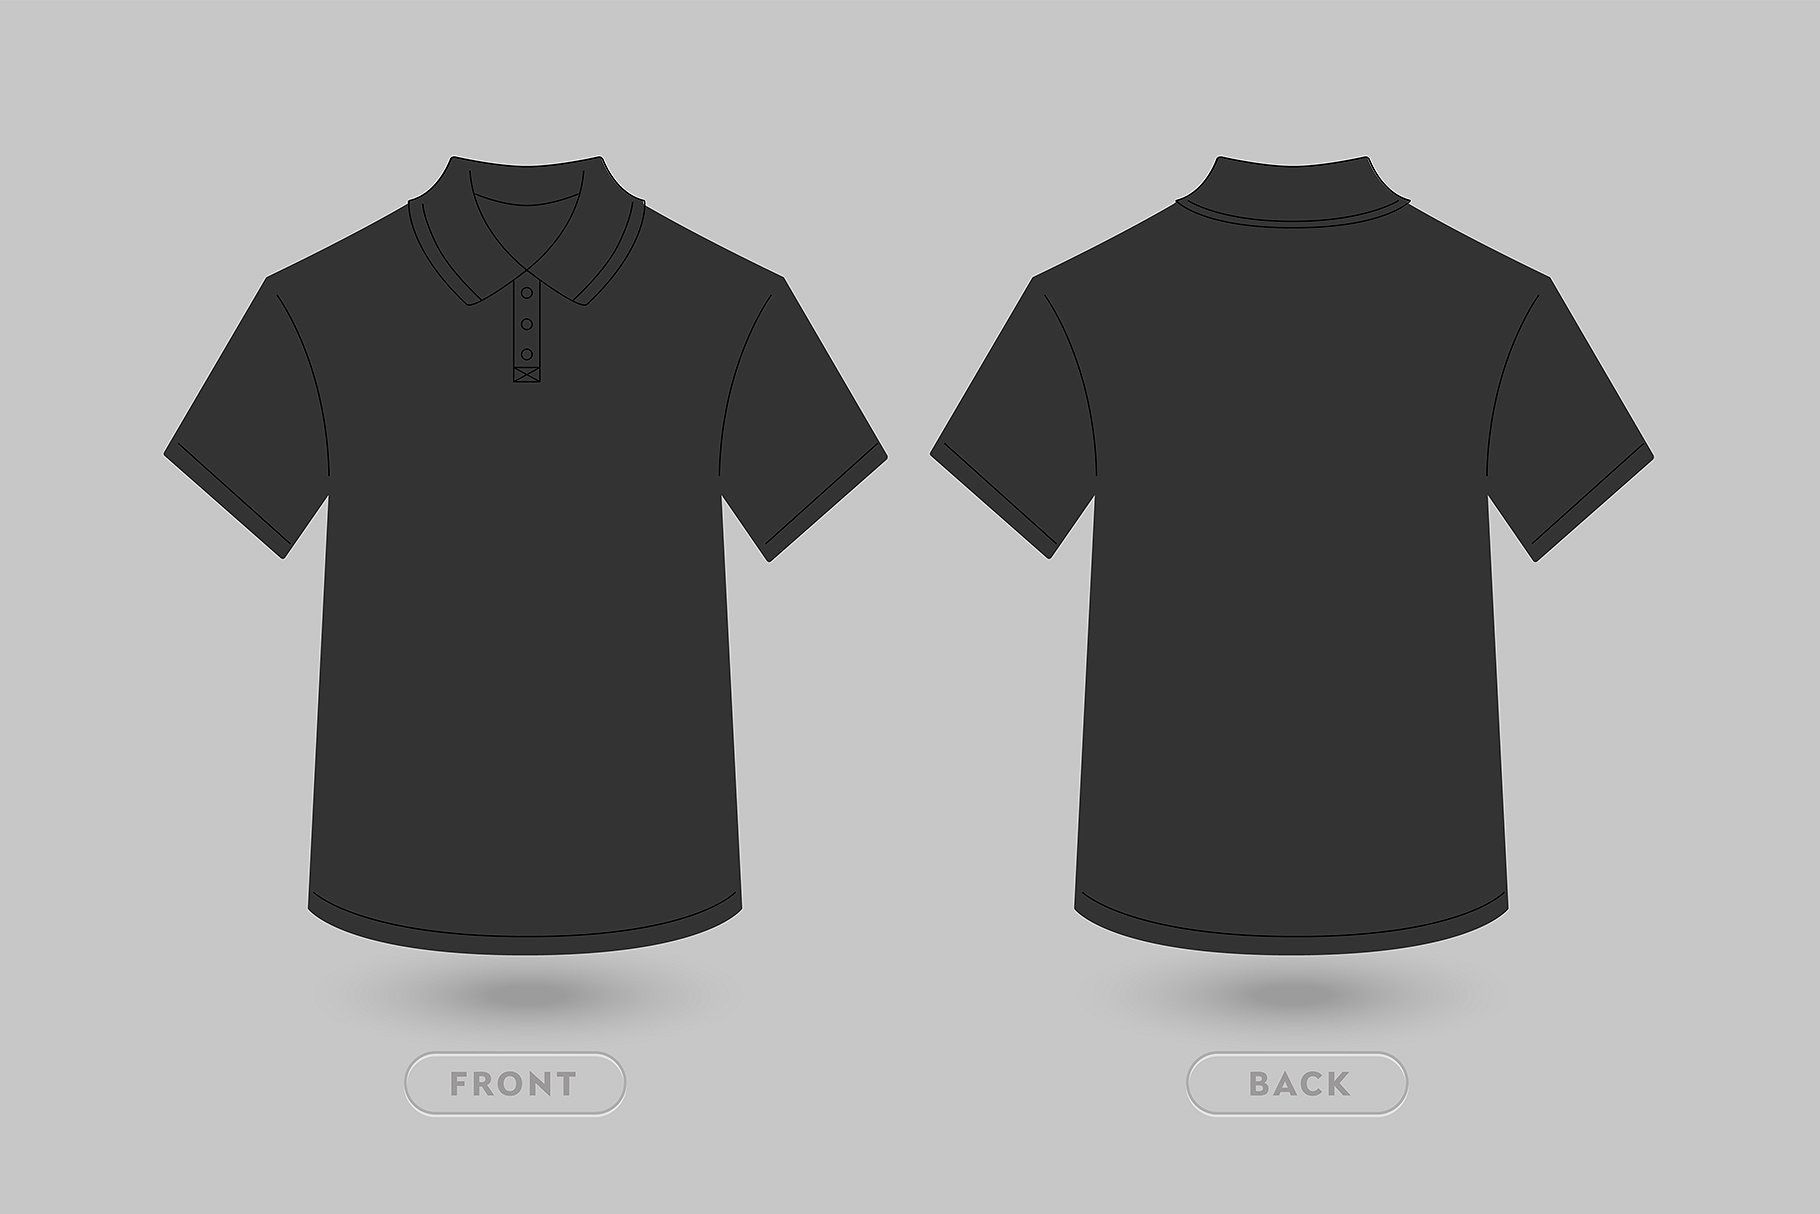 004 Unforgettable T Shirt Template Vector Design  Black Front And Back Free Download IllustratorFull